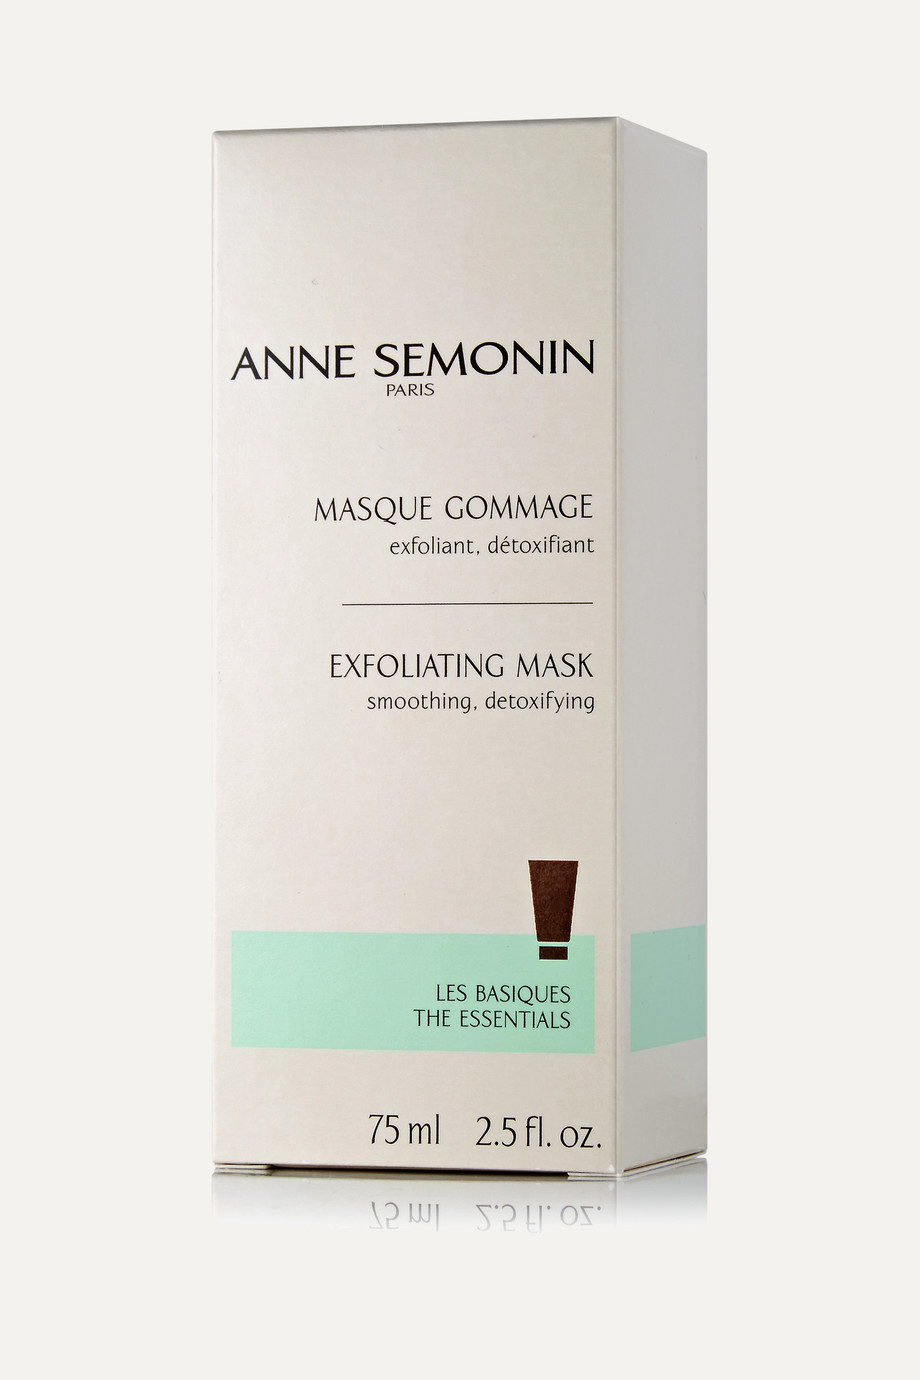 Anne Semonin Exfoliating Mask, 75ml